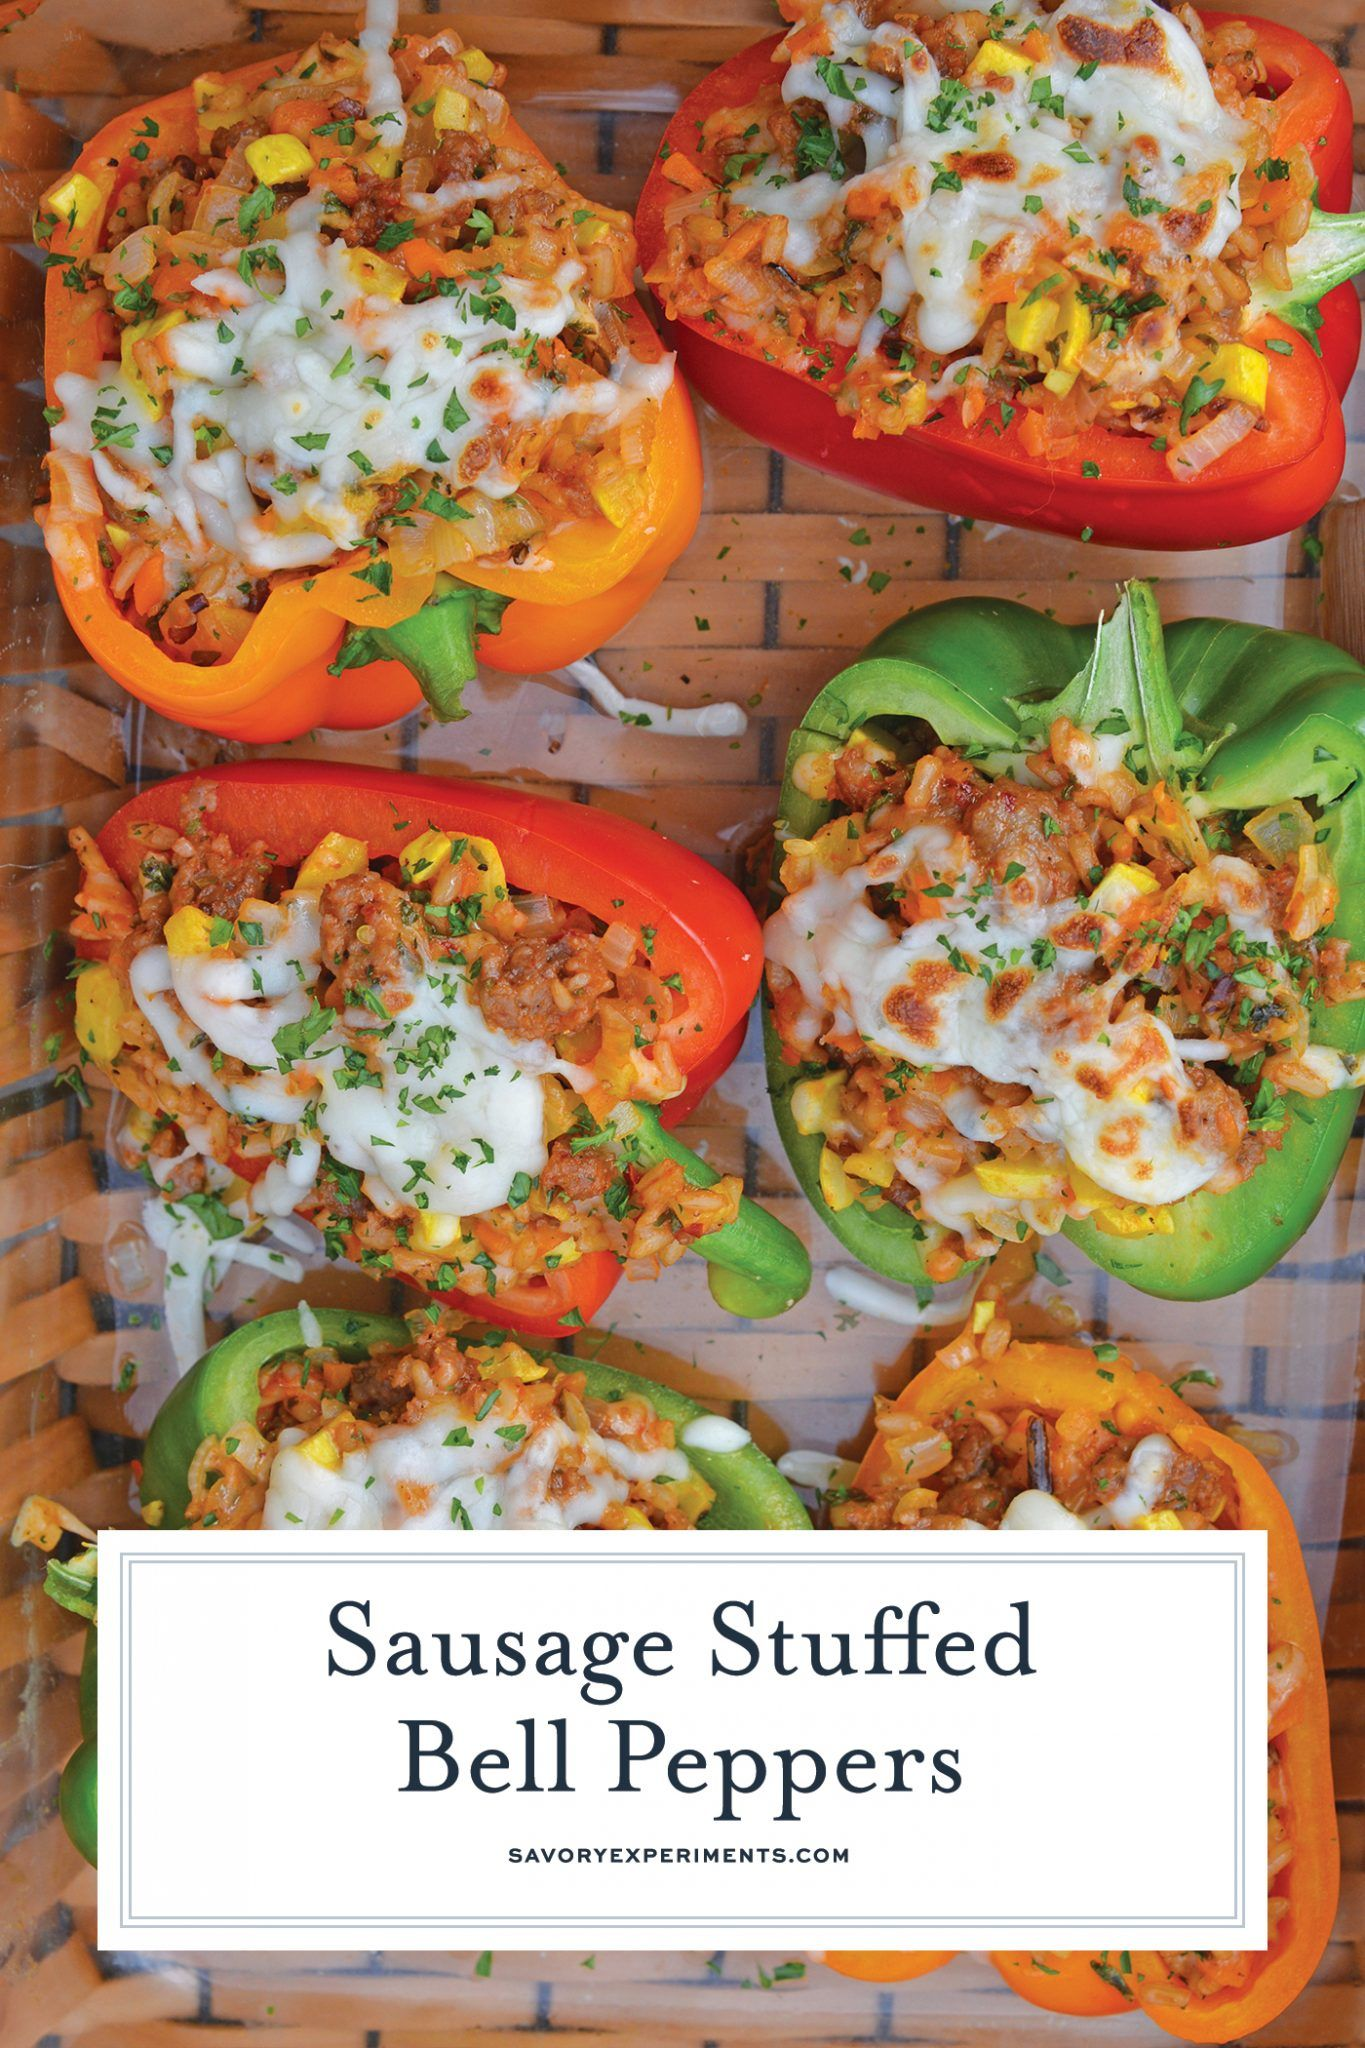 Sausage Stuffed Bell Peppers Are A Classic Italian Dish Using Stuffed Peppers With Rice Stuffed Peppers Ground Italian Sausage Recipes Italian Sausage Recipes